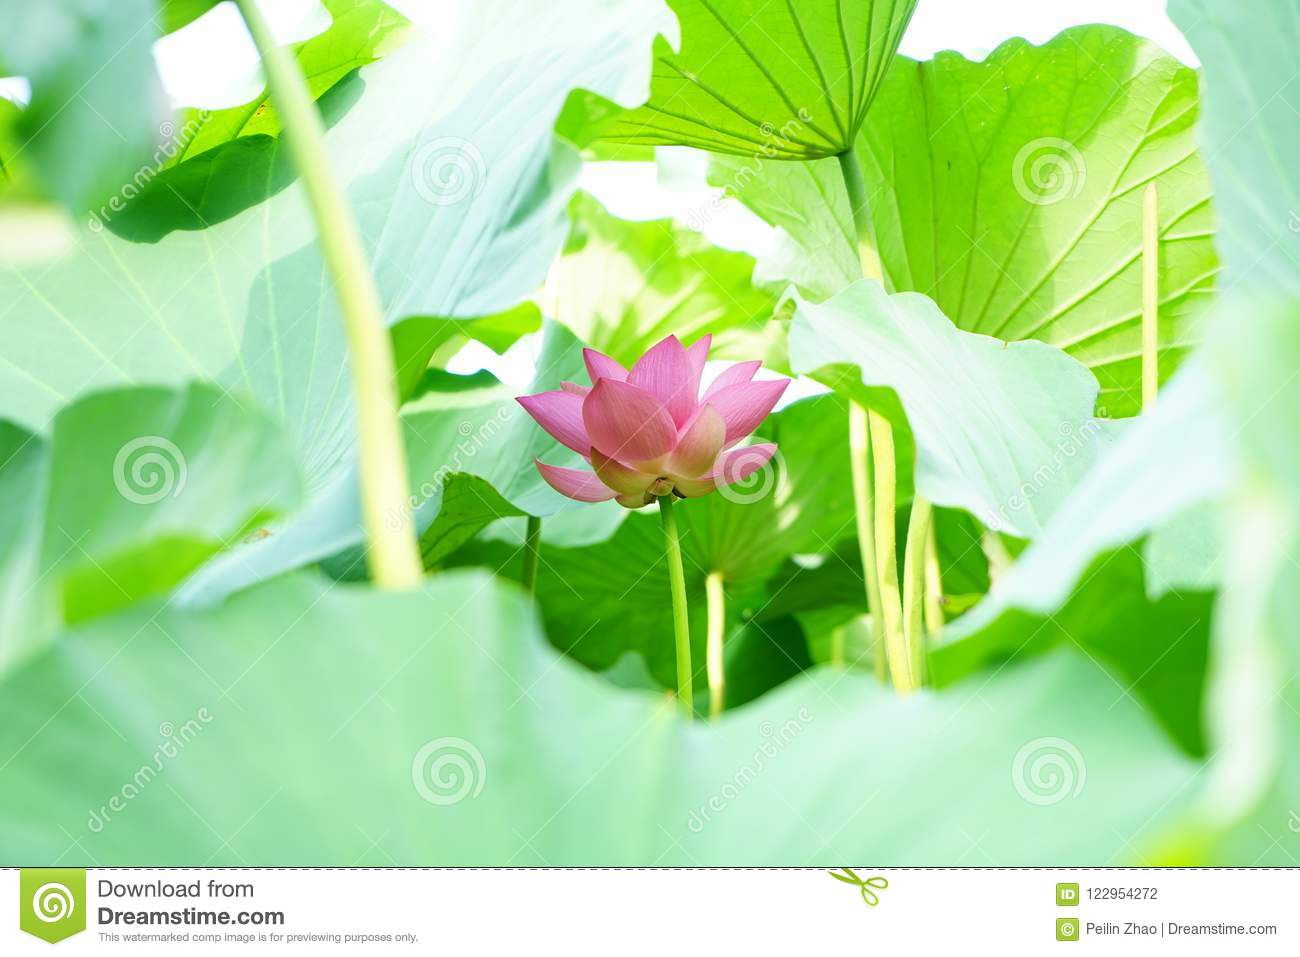 A lotus flower circled by leaves on the water stock photo image of a lotus flower circled by leavese flower is quiet growing upjust like a baby smile face is very purity izmirmasajfo